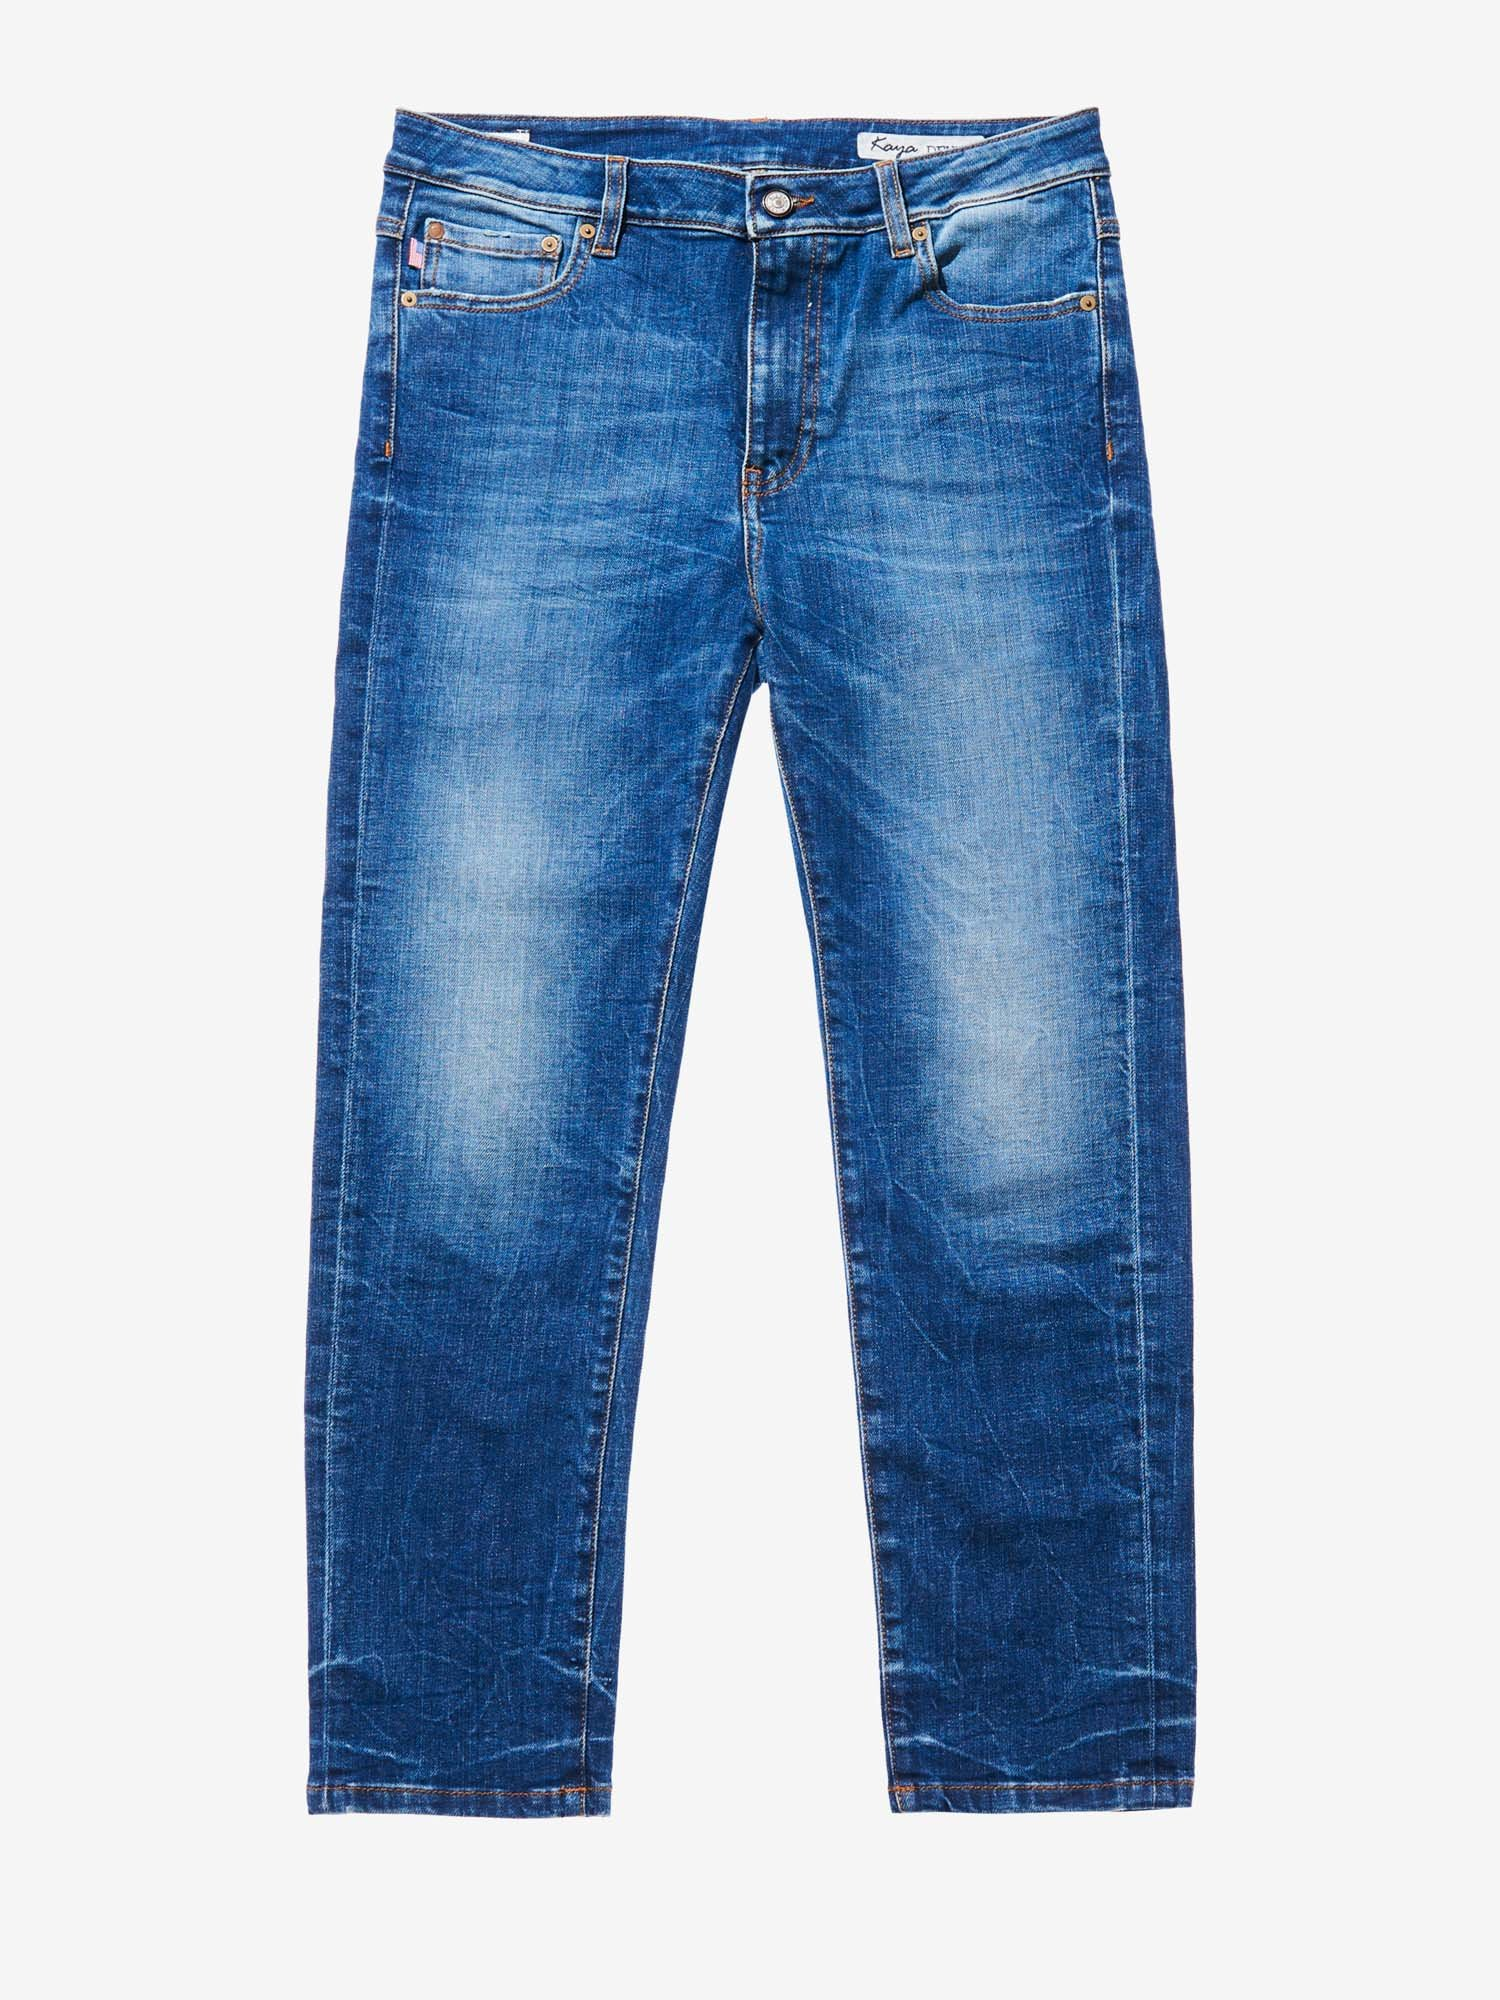 DENIM STRETCH USED - Blauer